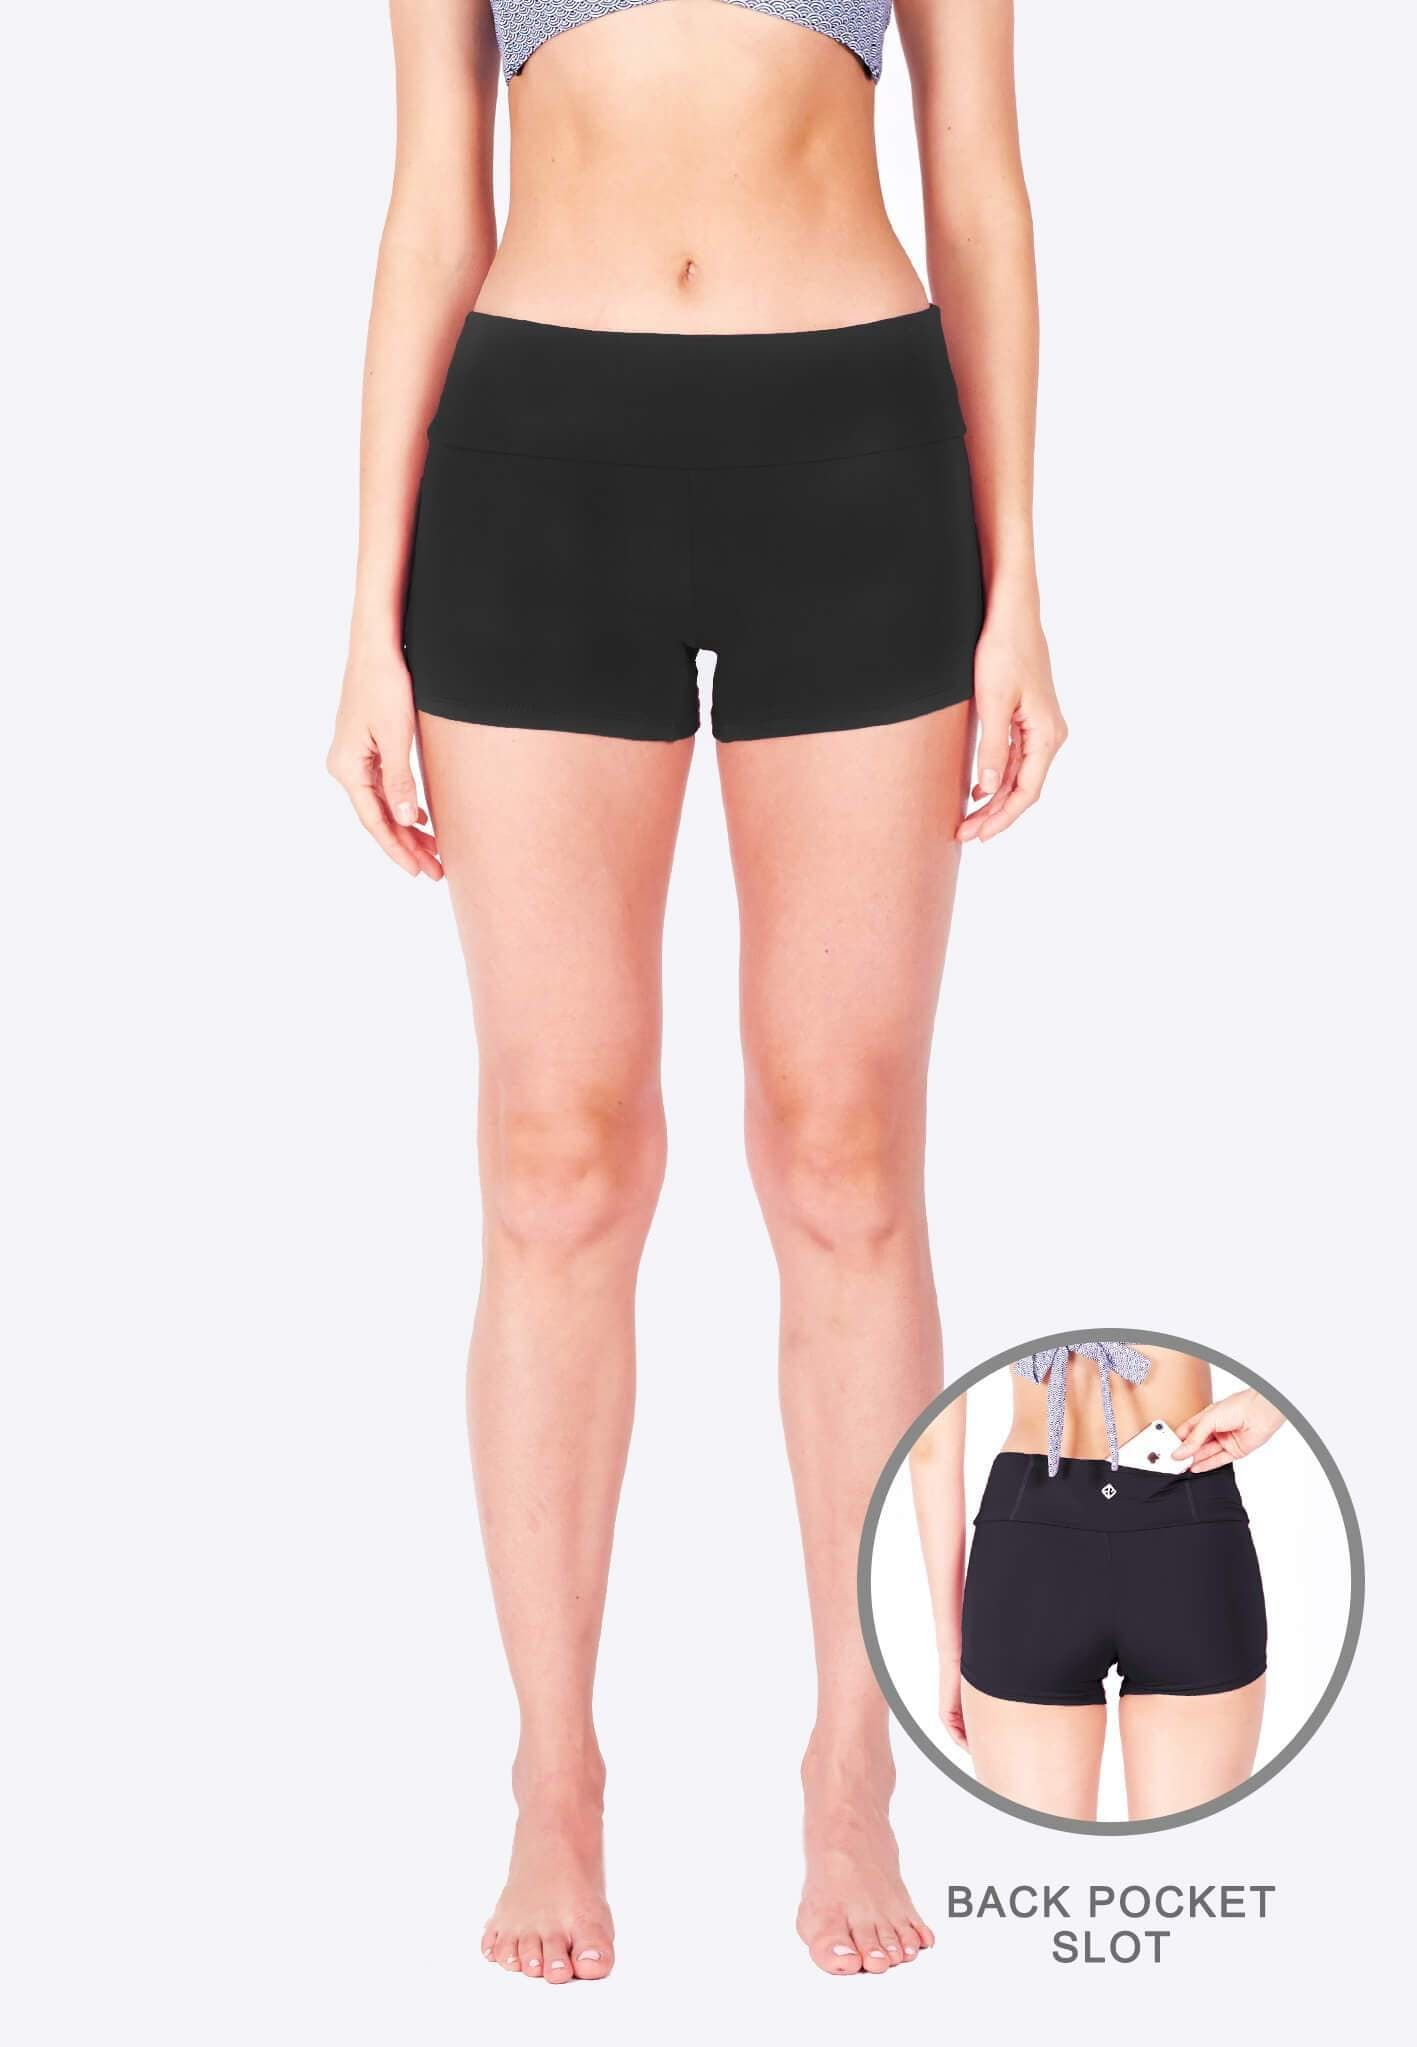 Athleiswim™ Boyshorts in Black - FUNFIT